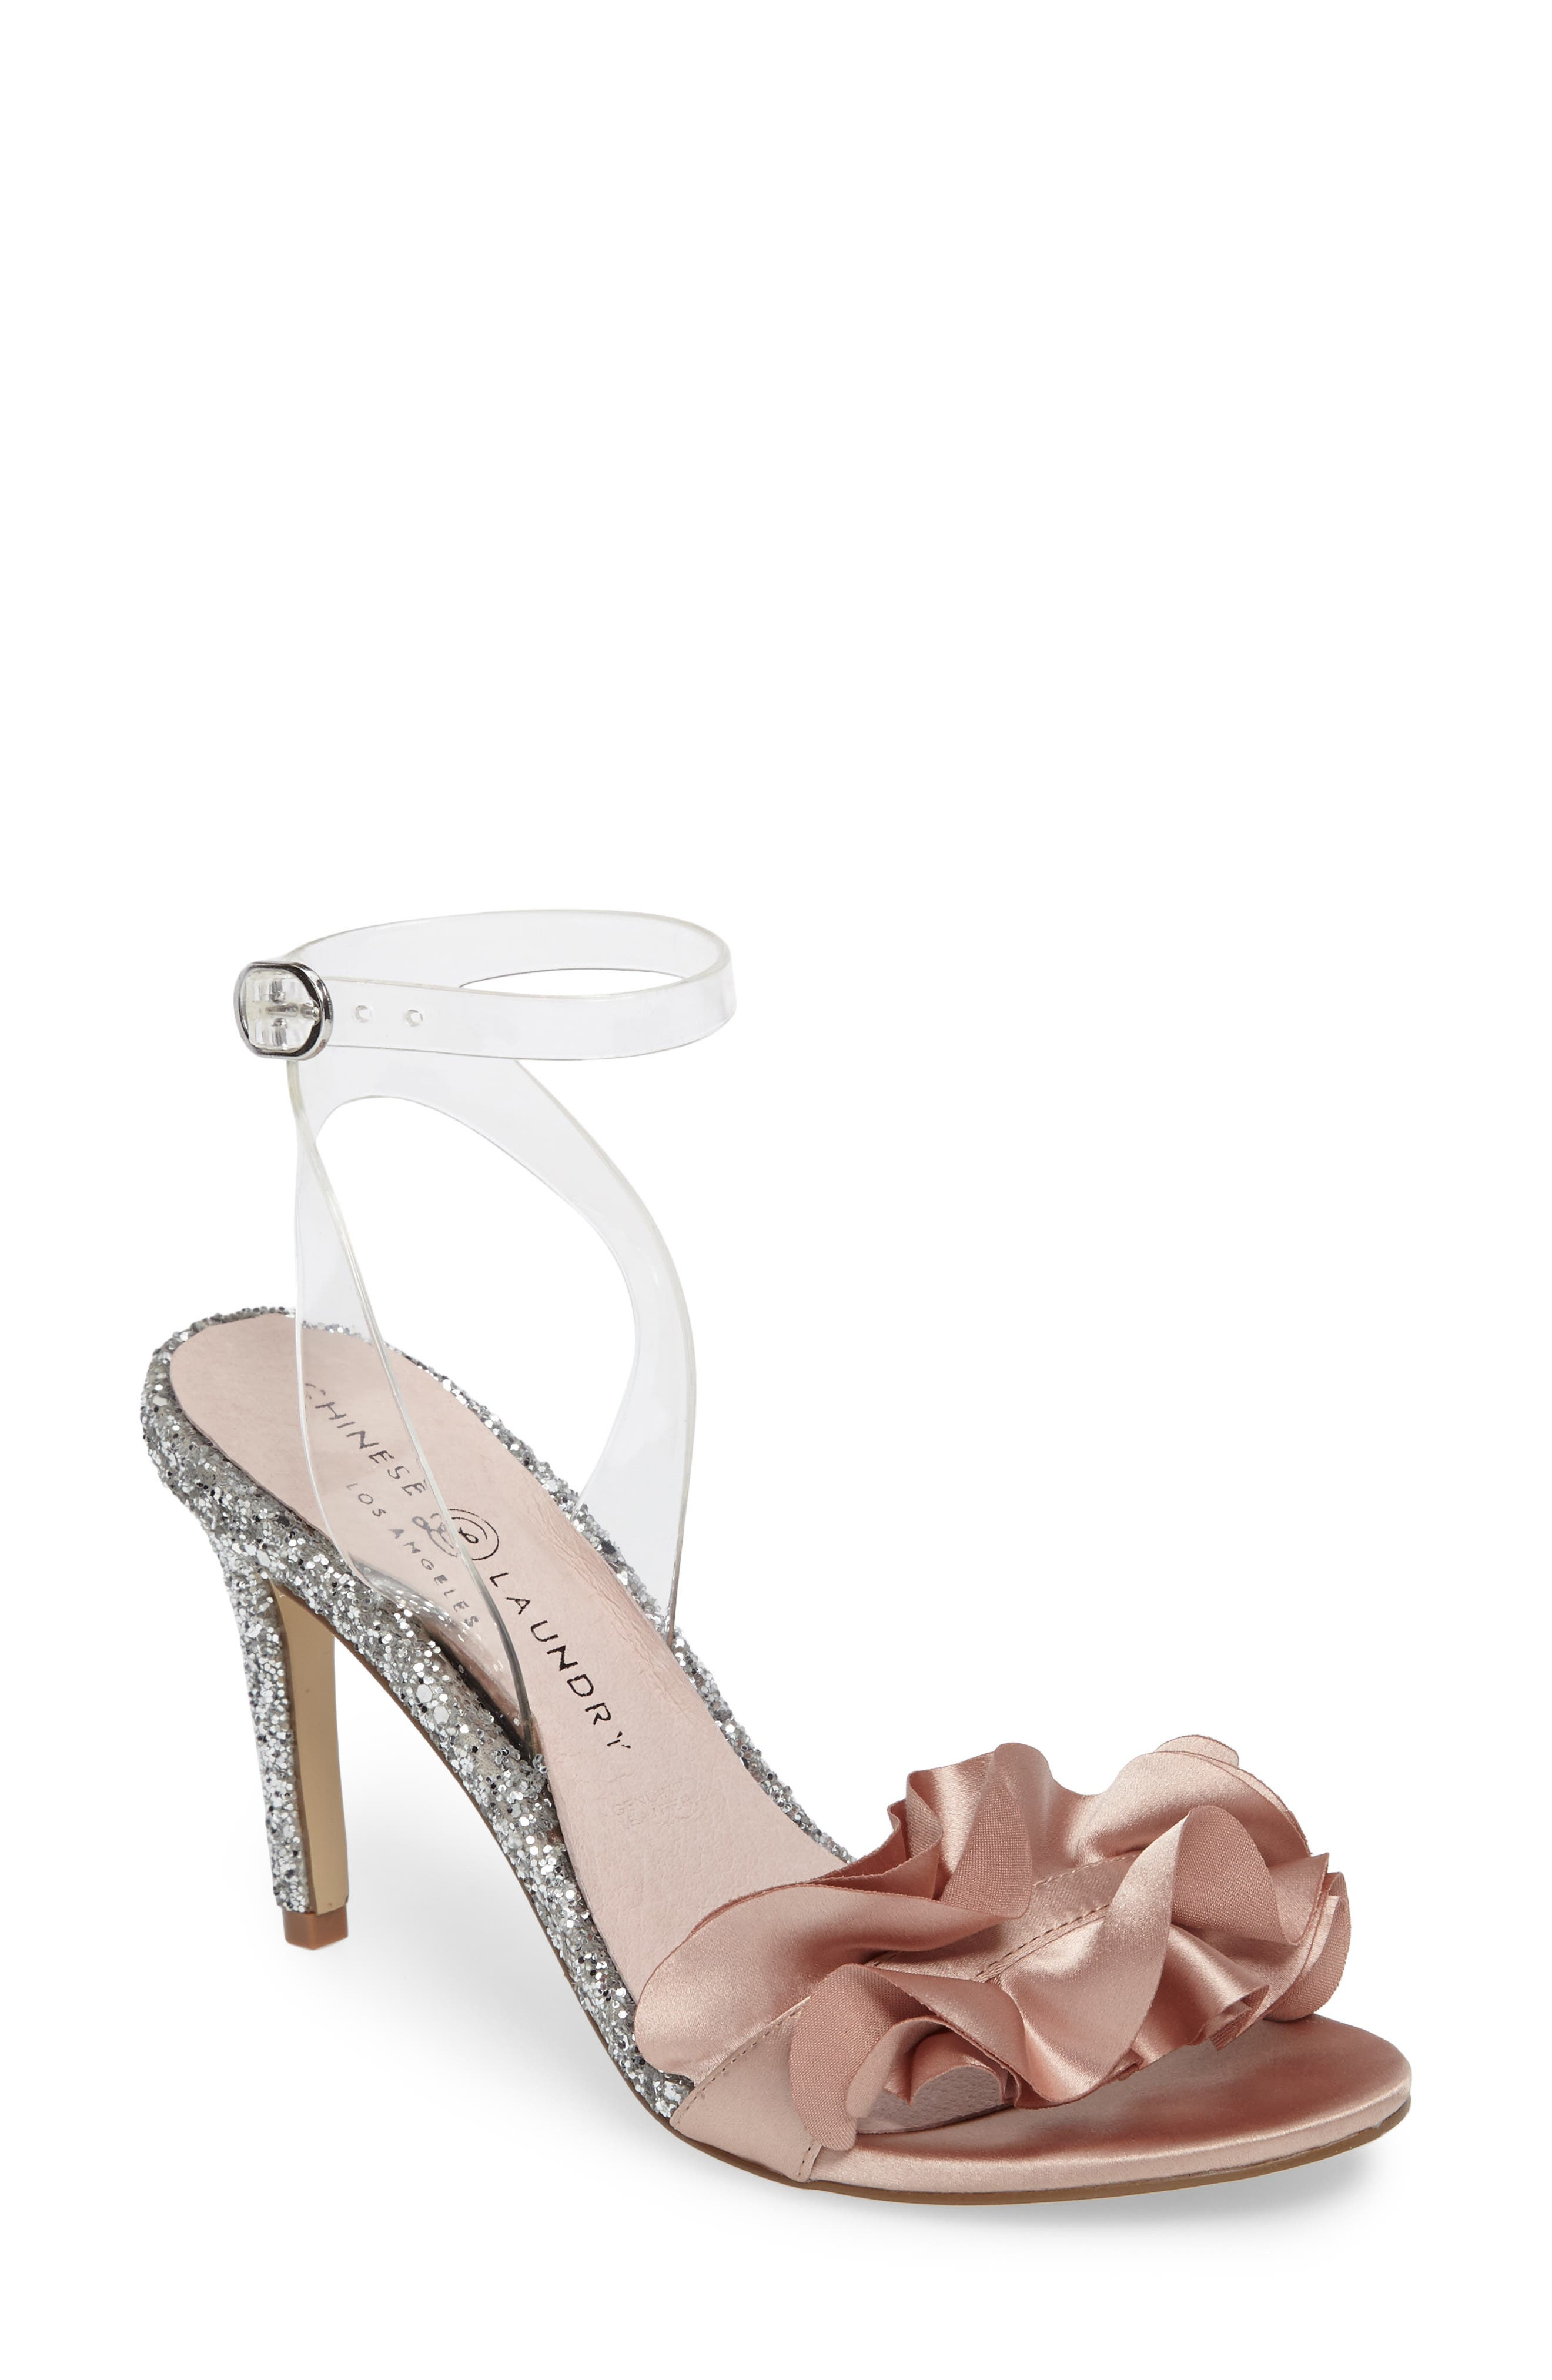 Janey Ruffled Sandal,                             Main thumbnail 1, color,                             Nude/ Clear